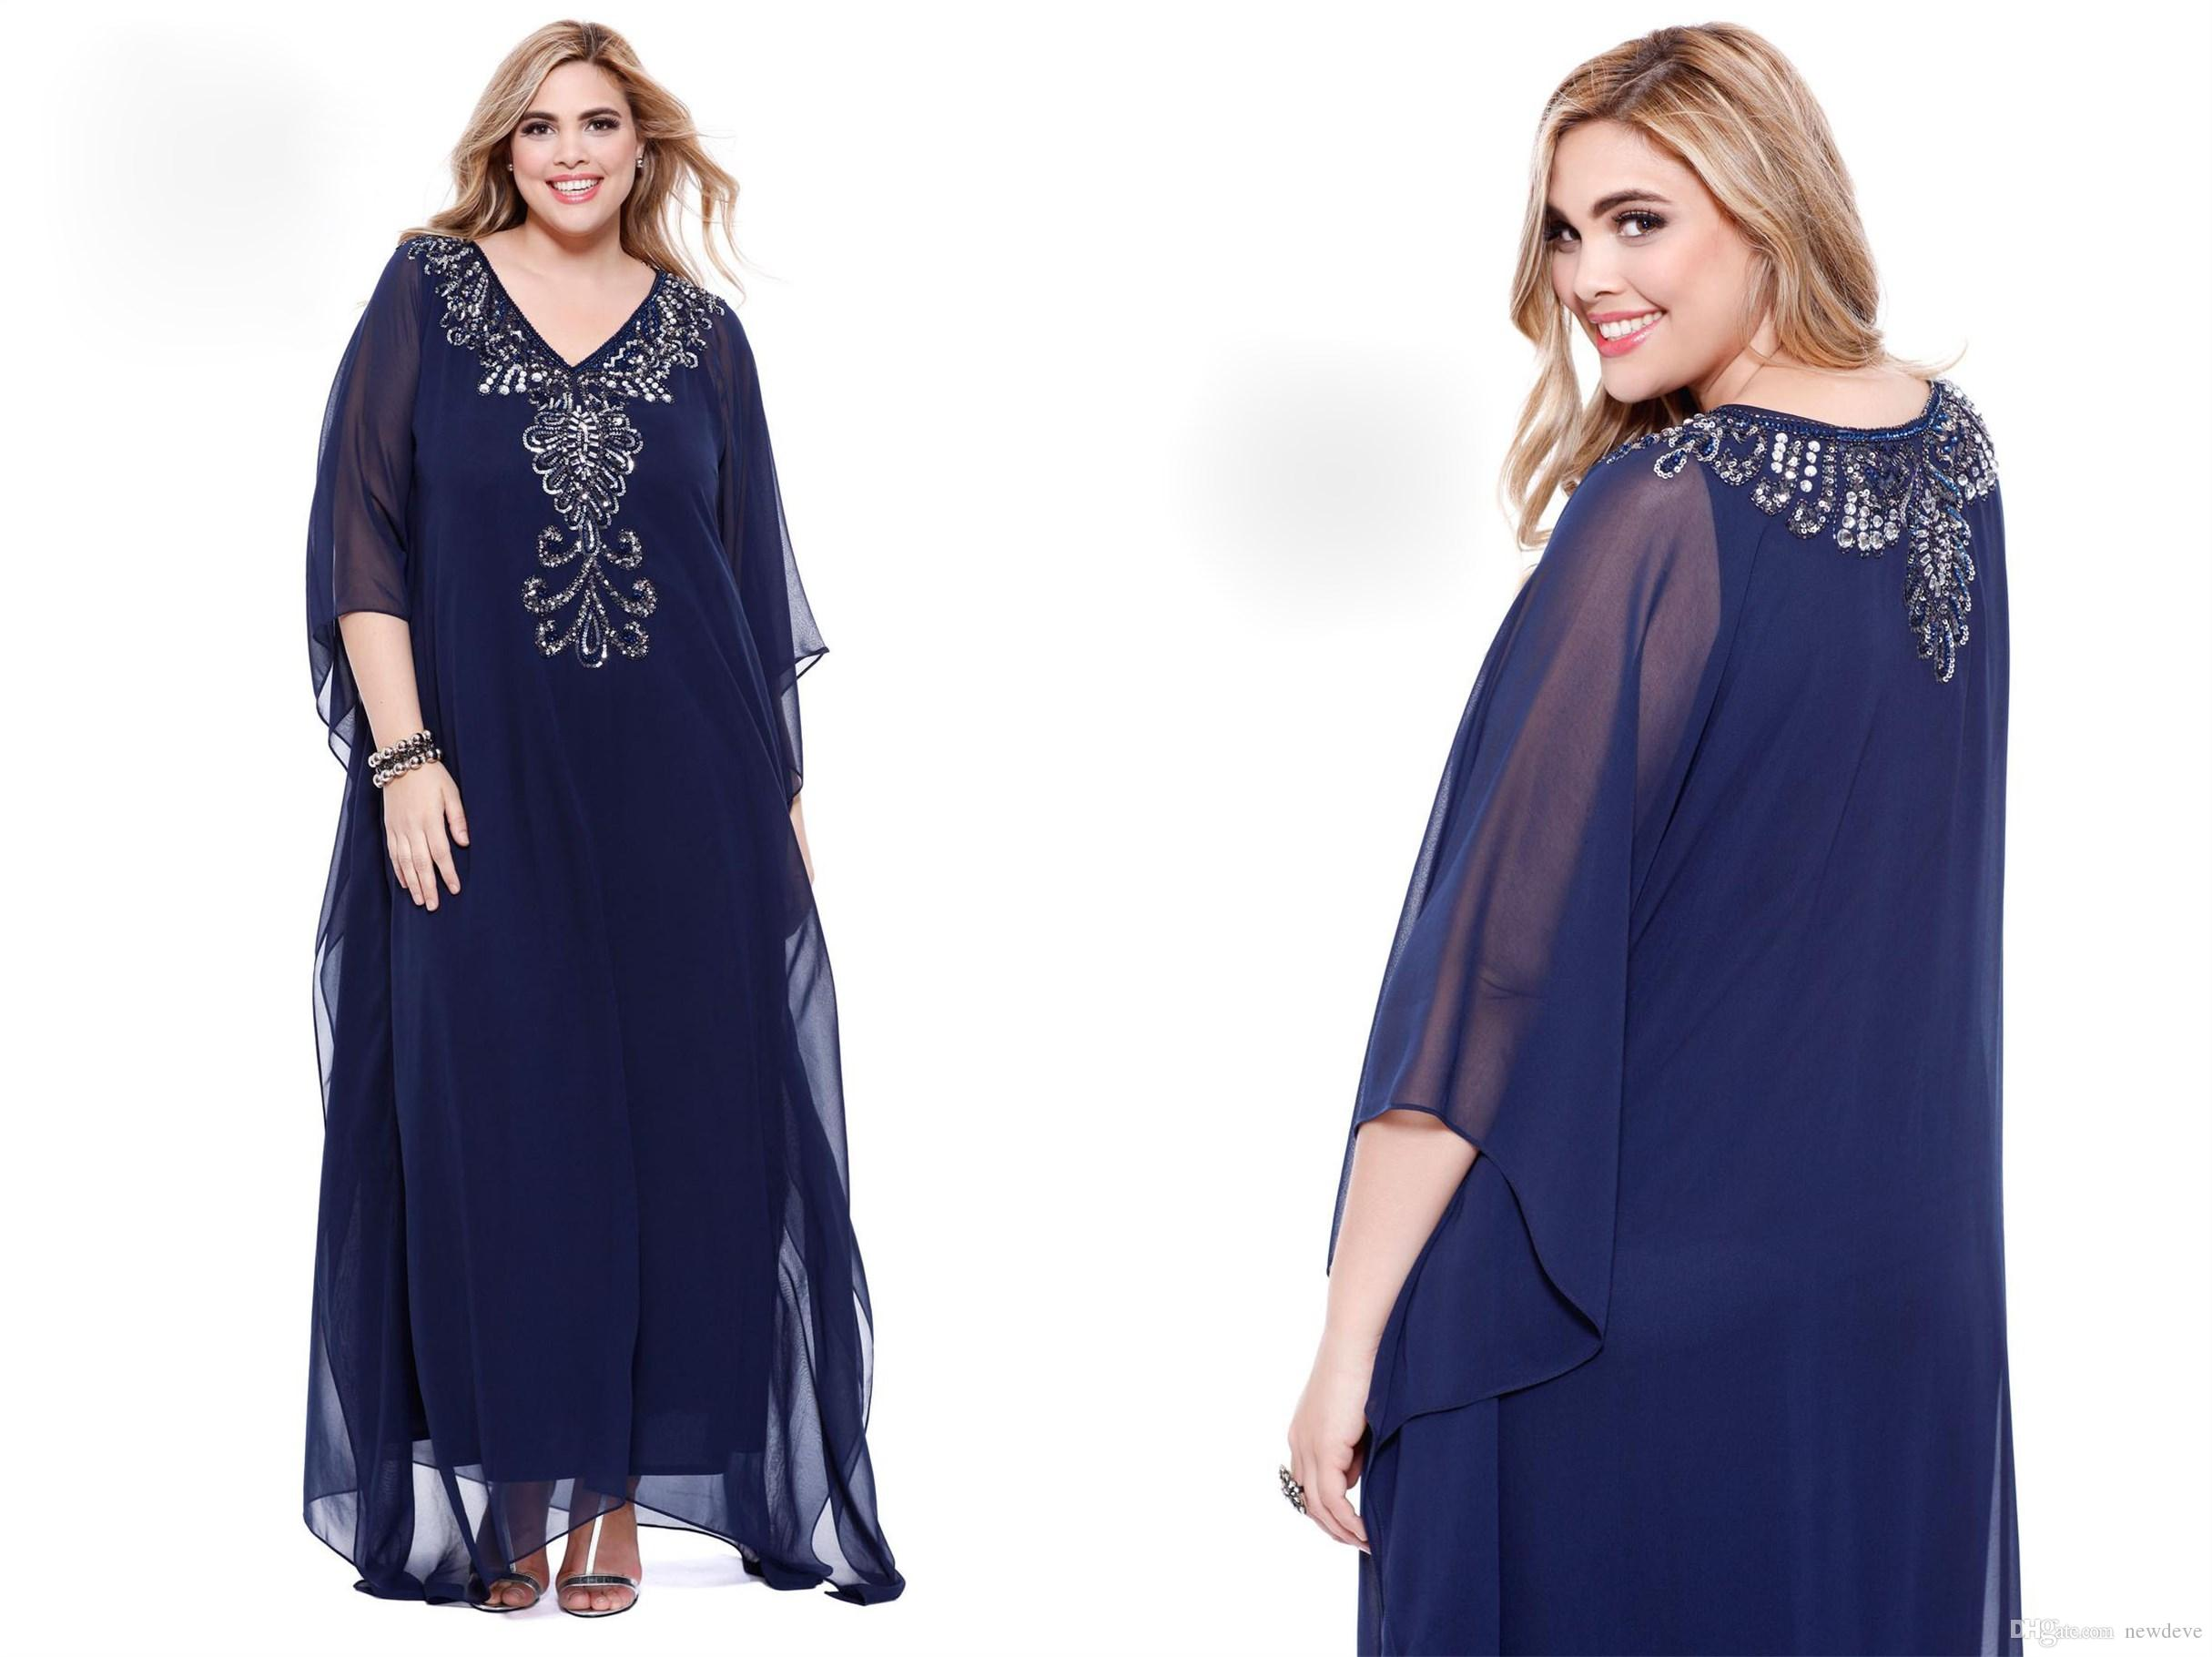 online for sale newest collection on wholesale Elegant Beaded Plus Size Special Occasion Dresses Long Sleeve Prom Gowns V  Neck Shail Kusa Formal Dress Plus Size Summer Dresses Plus Size Tops From  ...